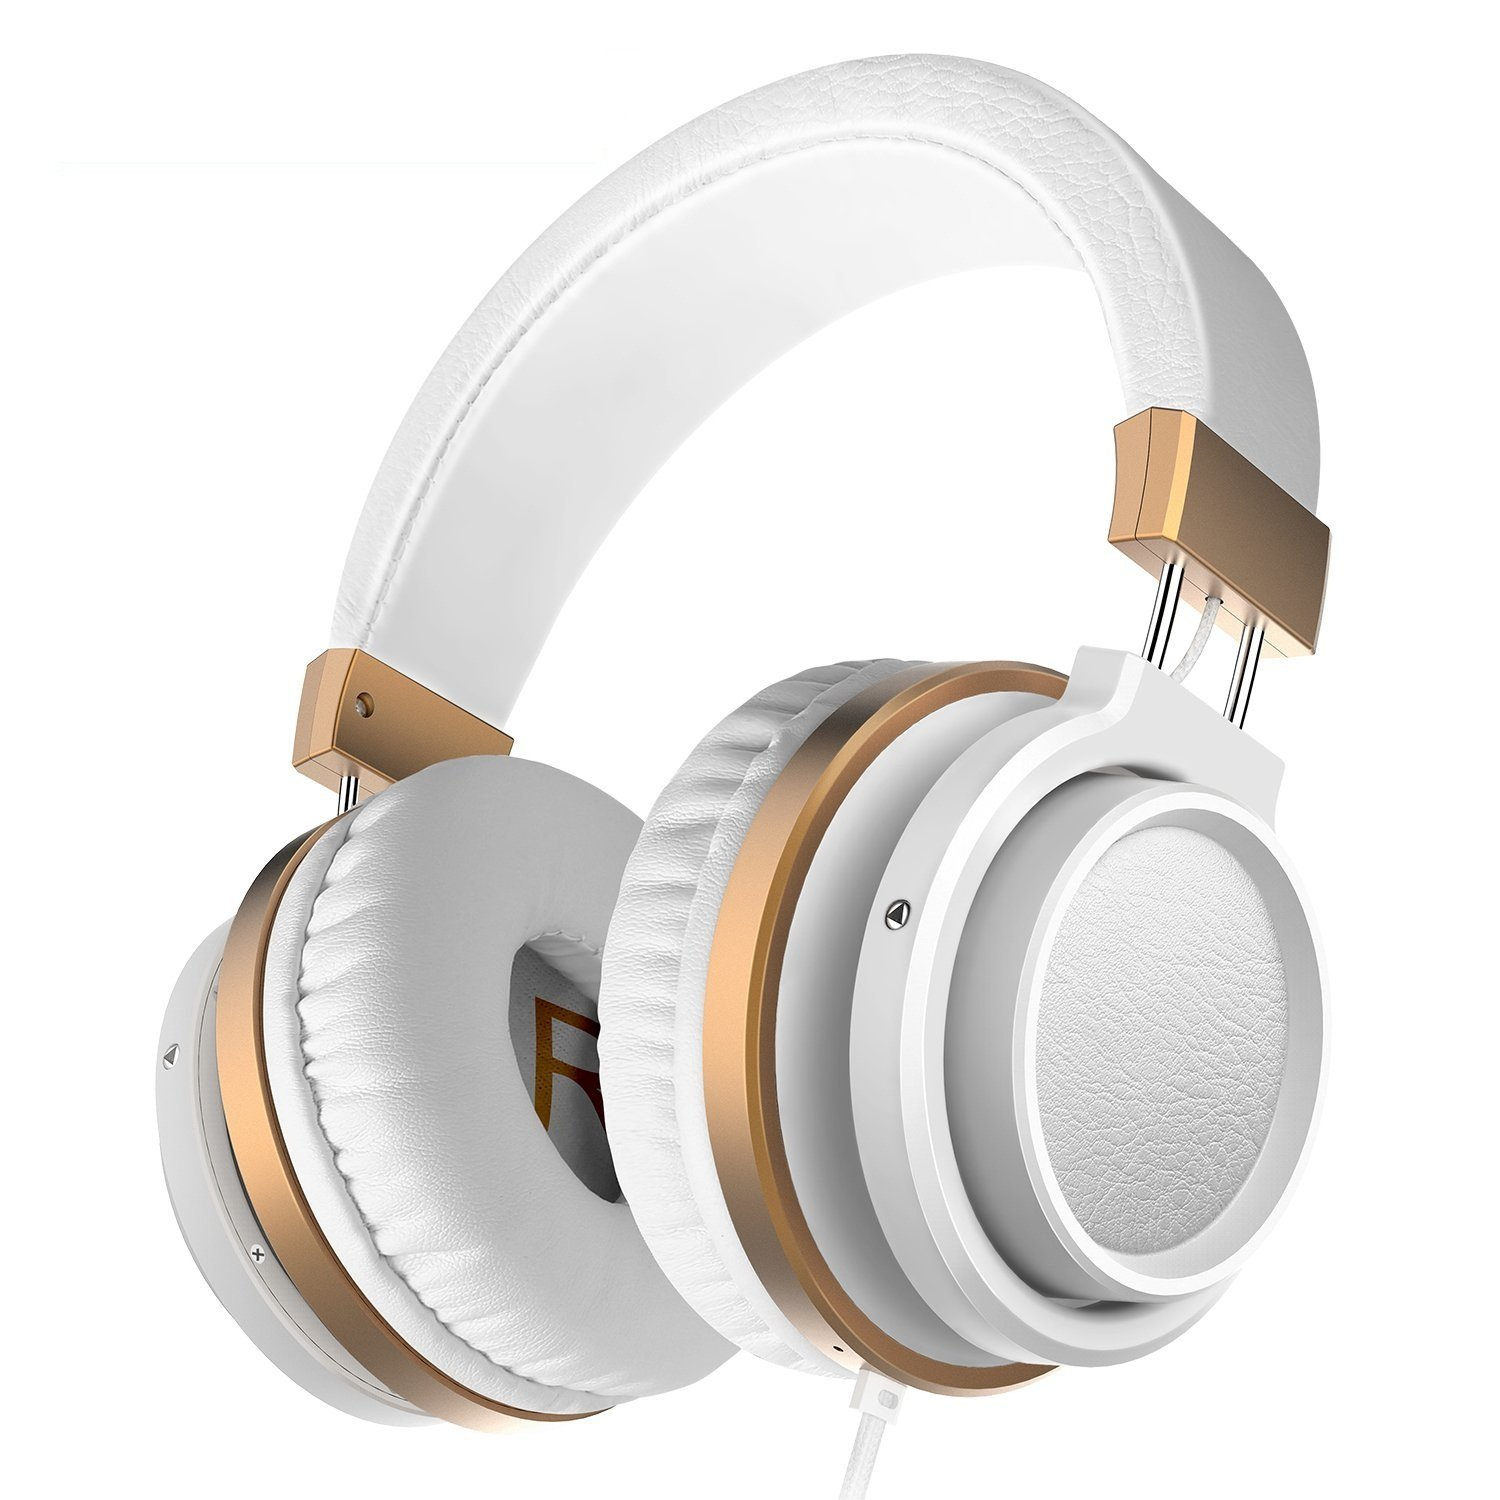 Ailihen MX-06 Over Ear Headphones with Microphone and Volume Control Bass Stereo Adjustable Headsets for IOS Android Smartphones Laptop Tablets Computer MP3/4 (White Golden)